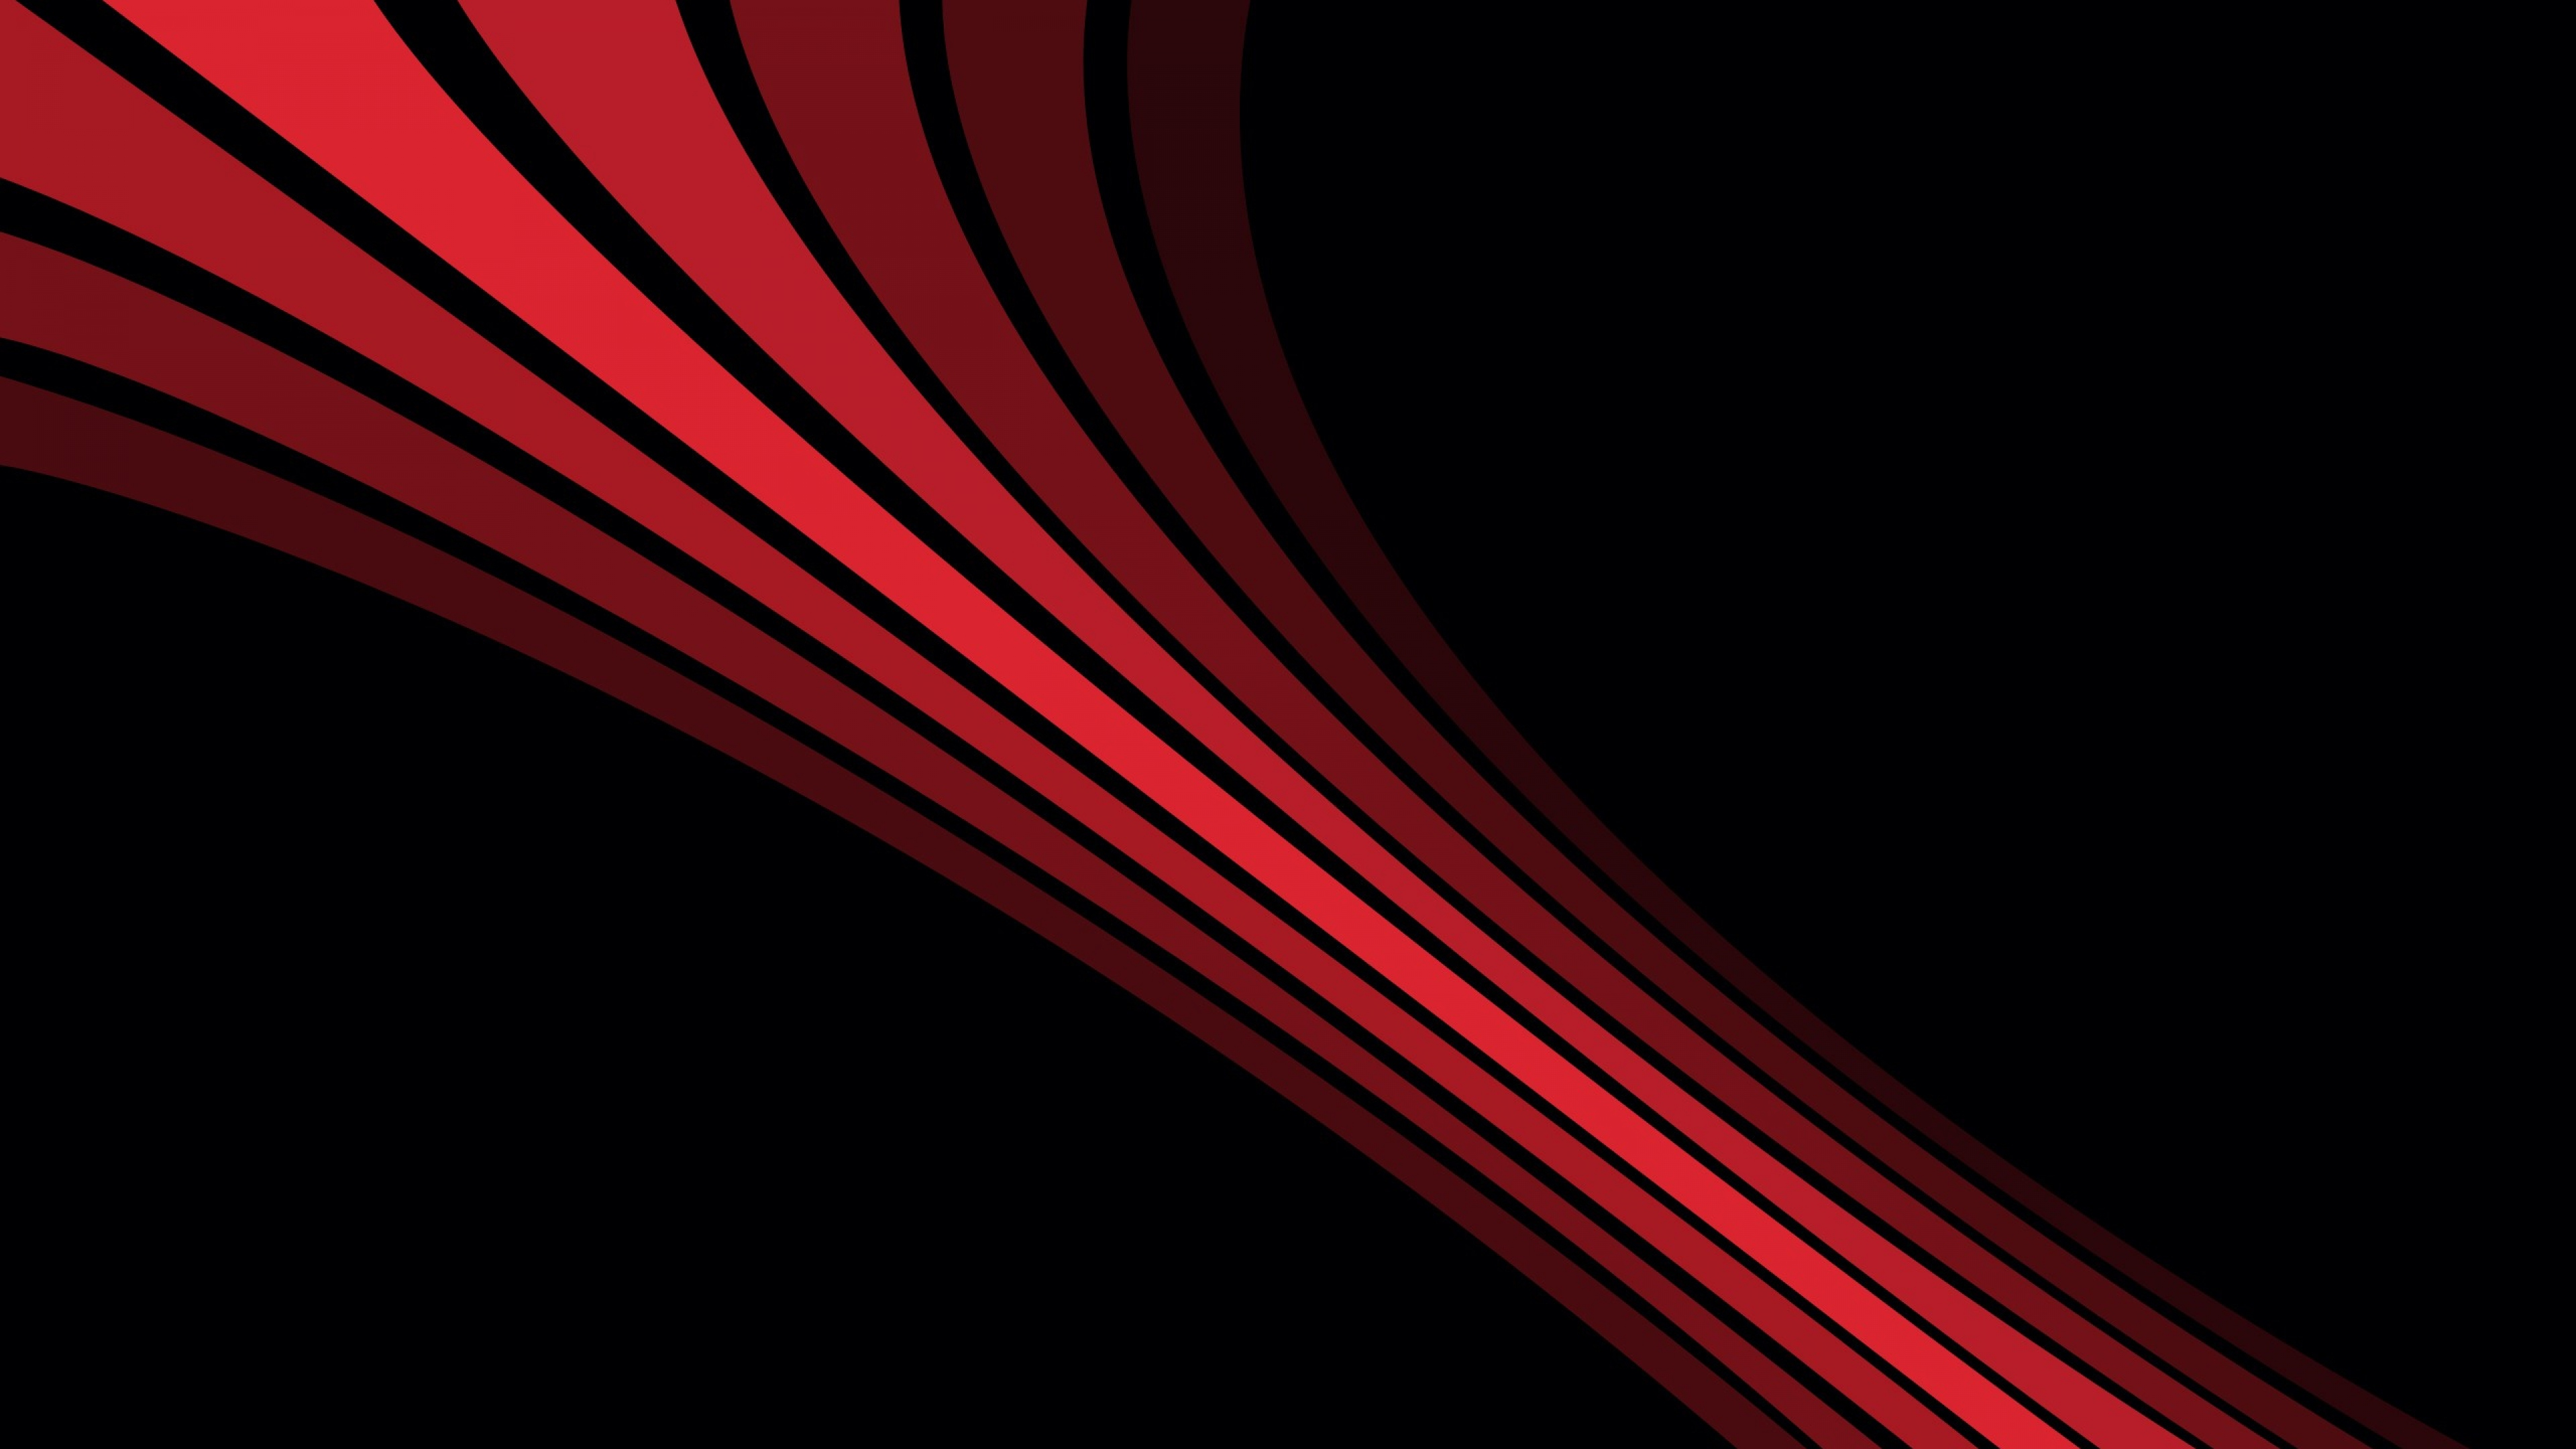 Shadow Stripes Shape Black Red Wallpaper Background 4K Ultra HD 3840x2160